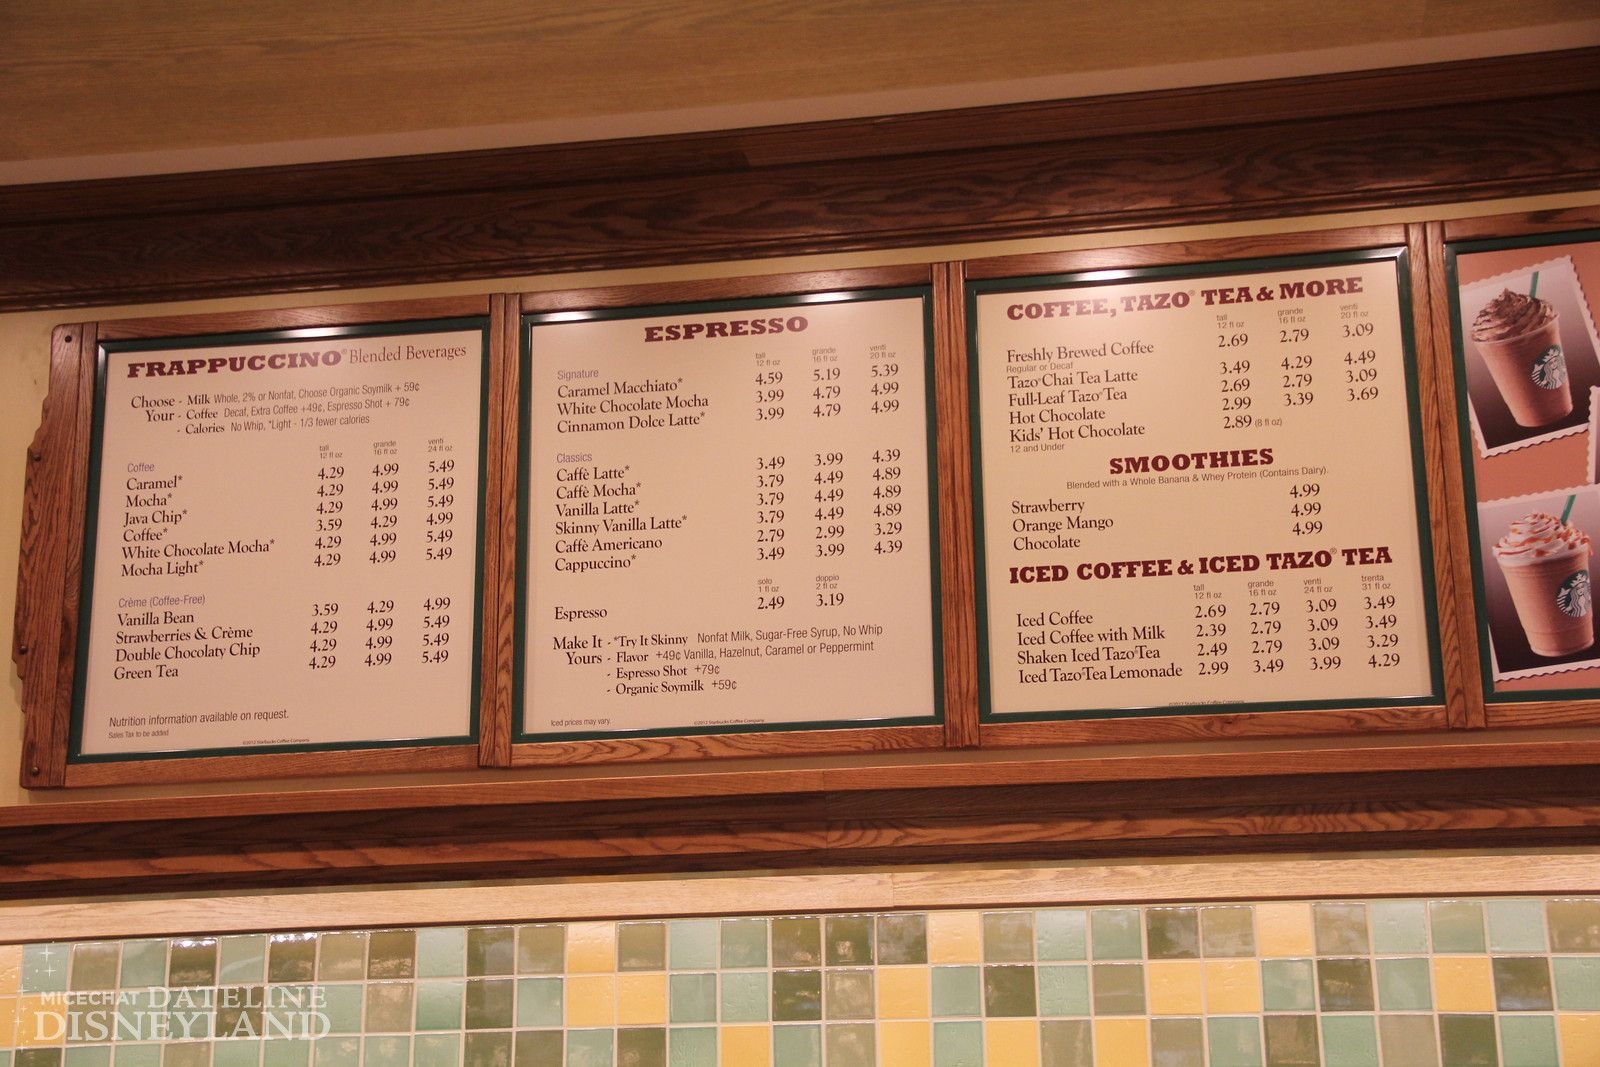 starbucks menu and price list at disney california adventure